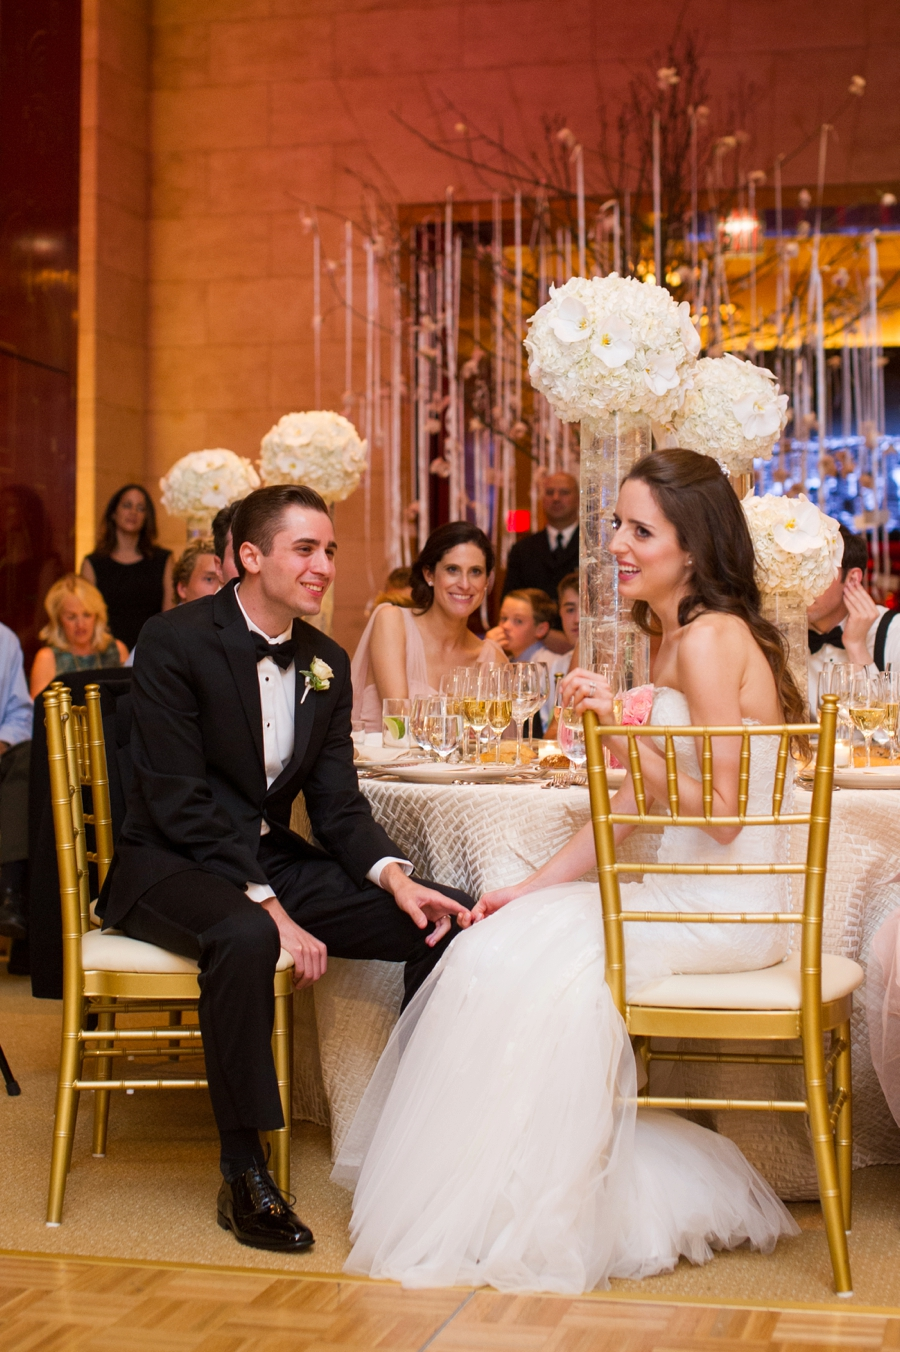 KR_FOUR_SEASONS_NYC_WEDDING_042.jpg